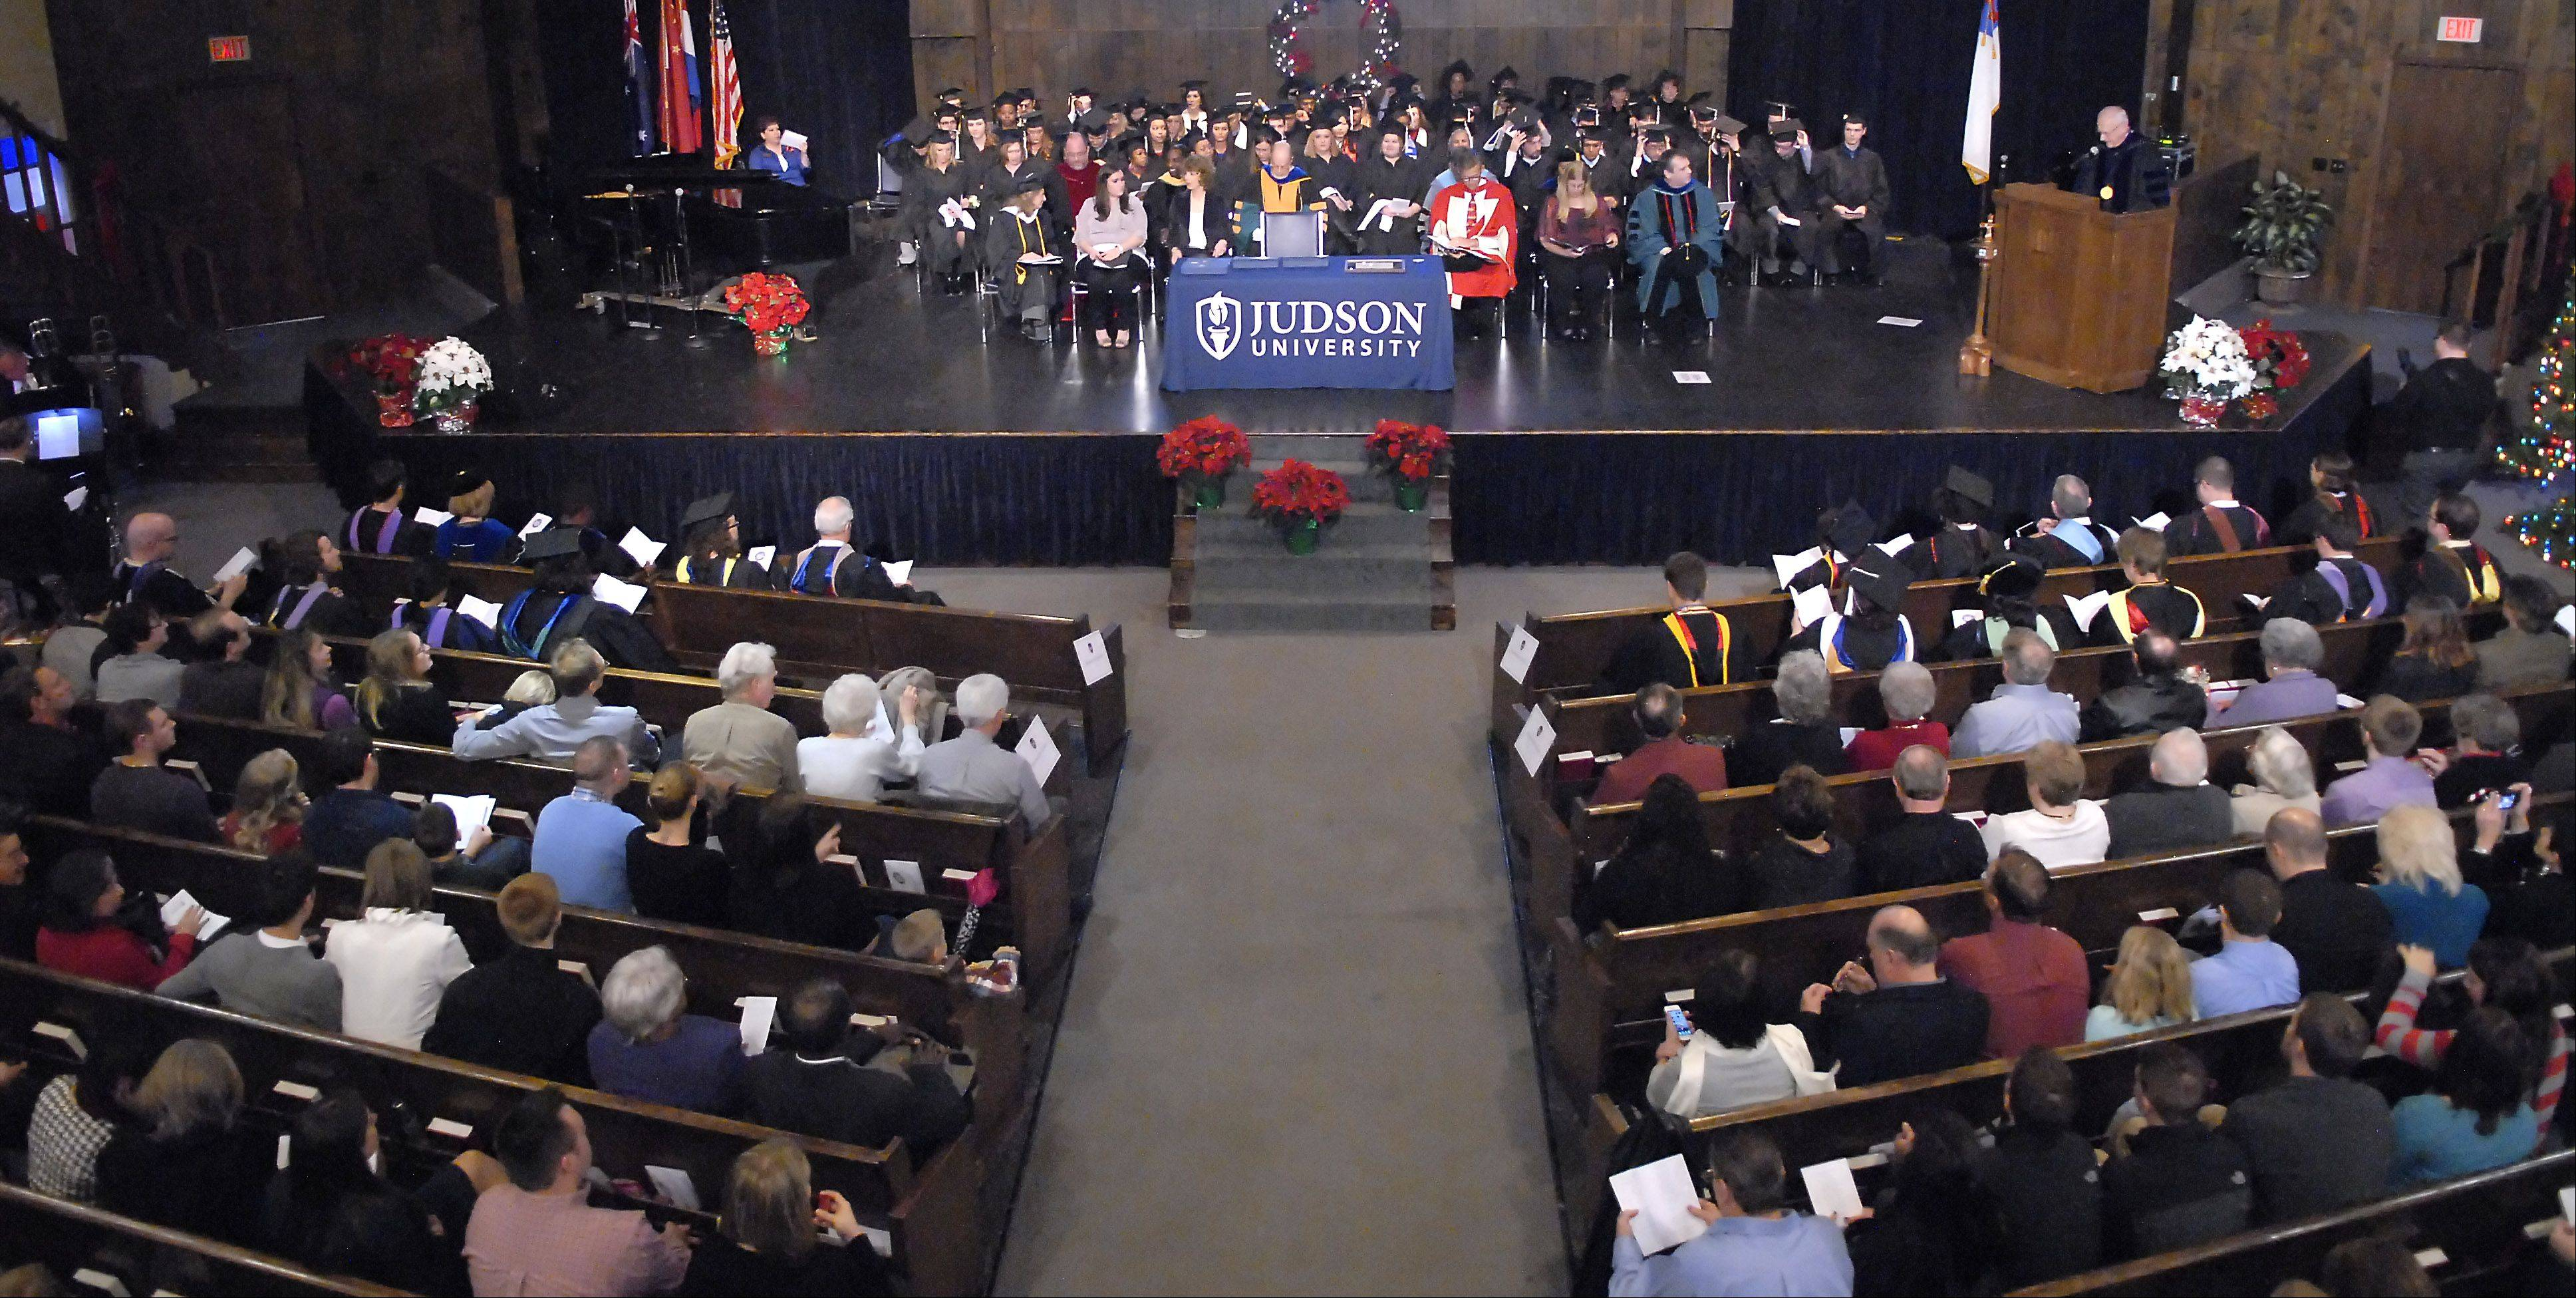 Judson University's morning commencement ceremony took place in the campus chapel in Elgin Saturday.